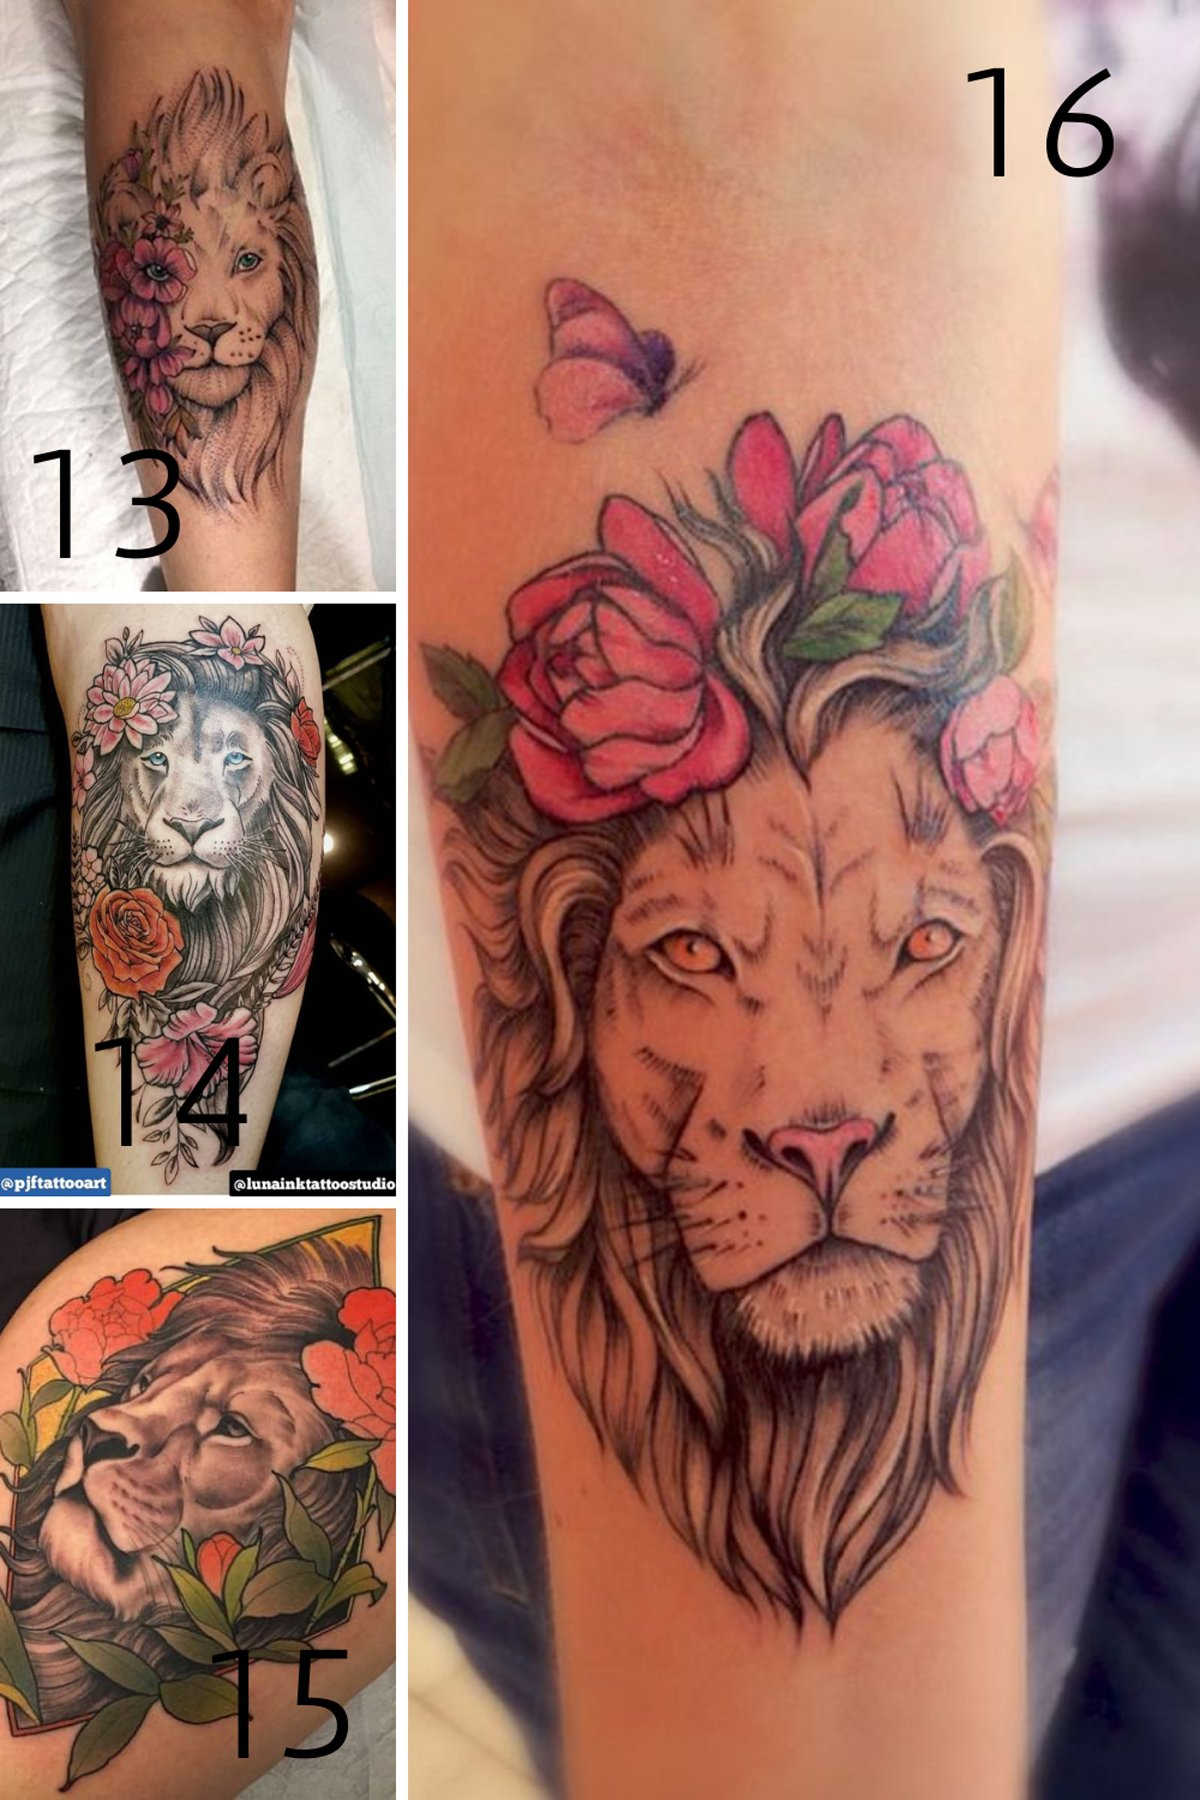 Female Lion tattoo meaning